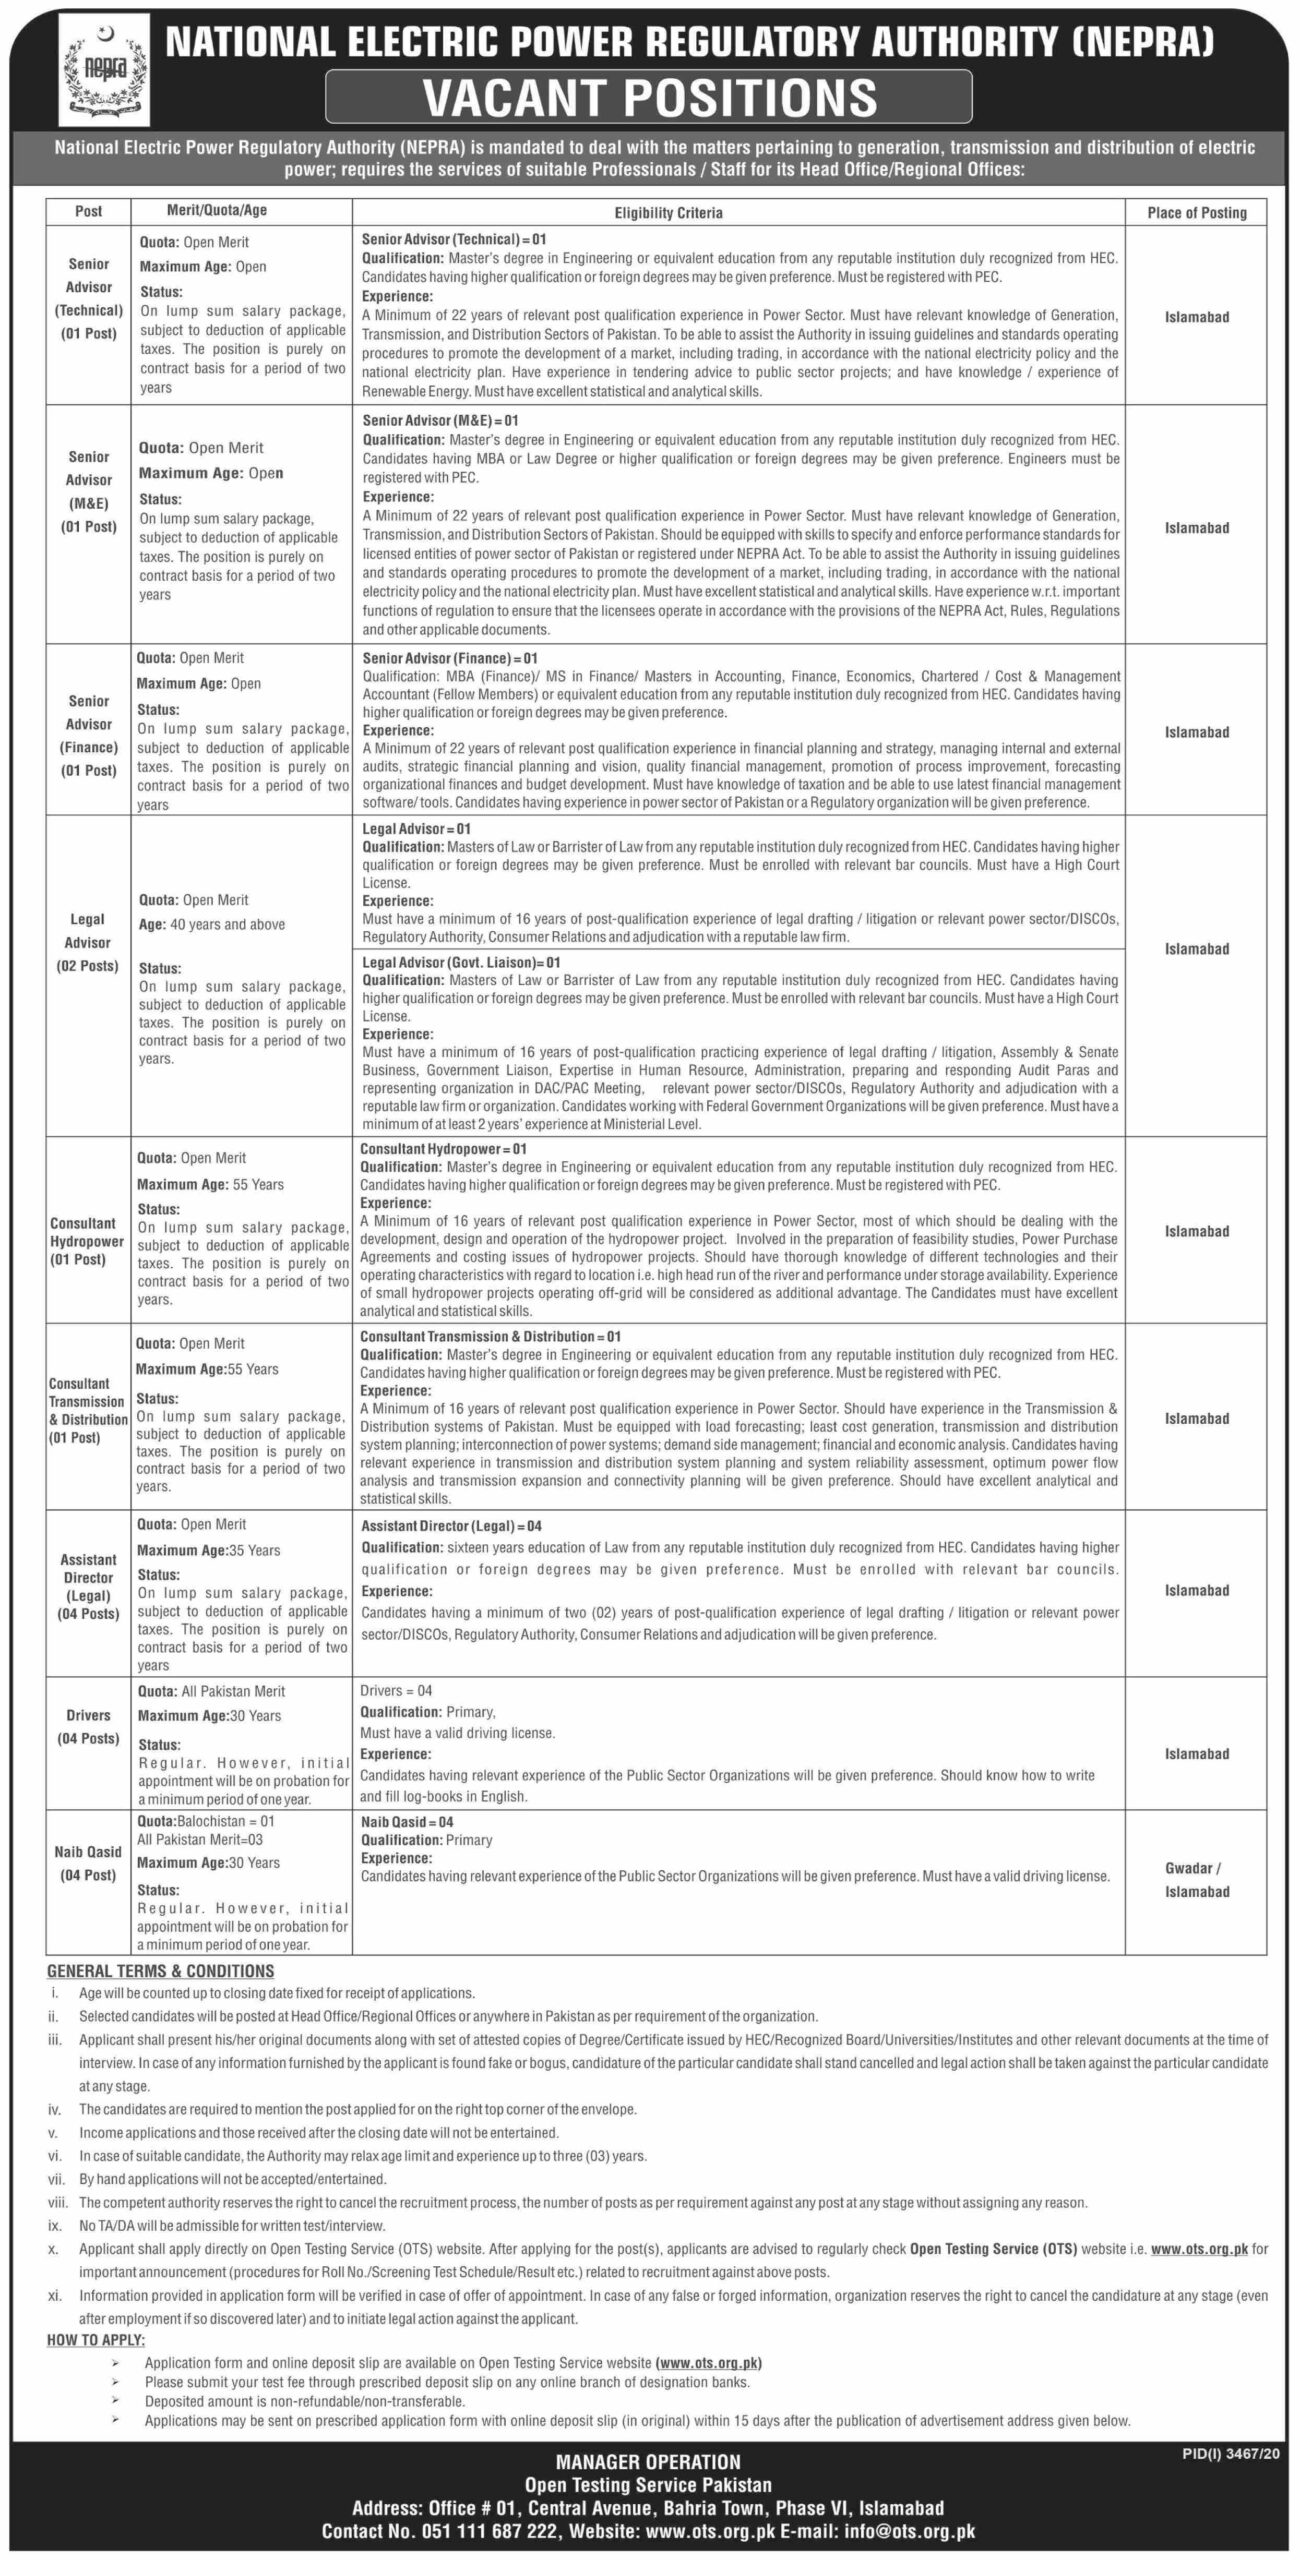 National Electric Power Regulatory Authority Jobs